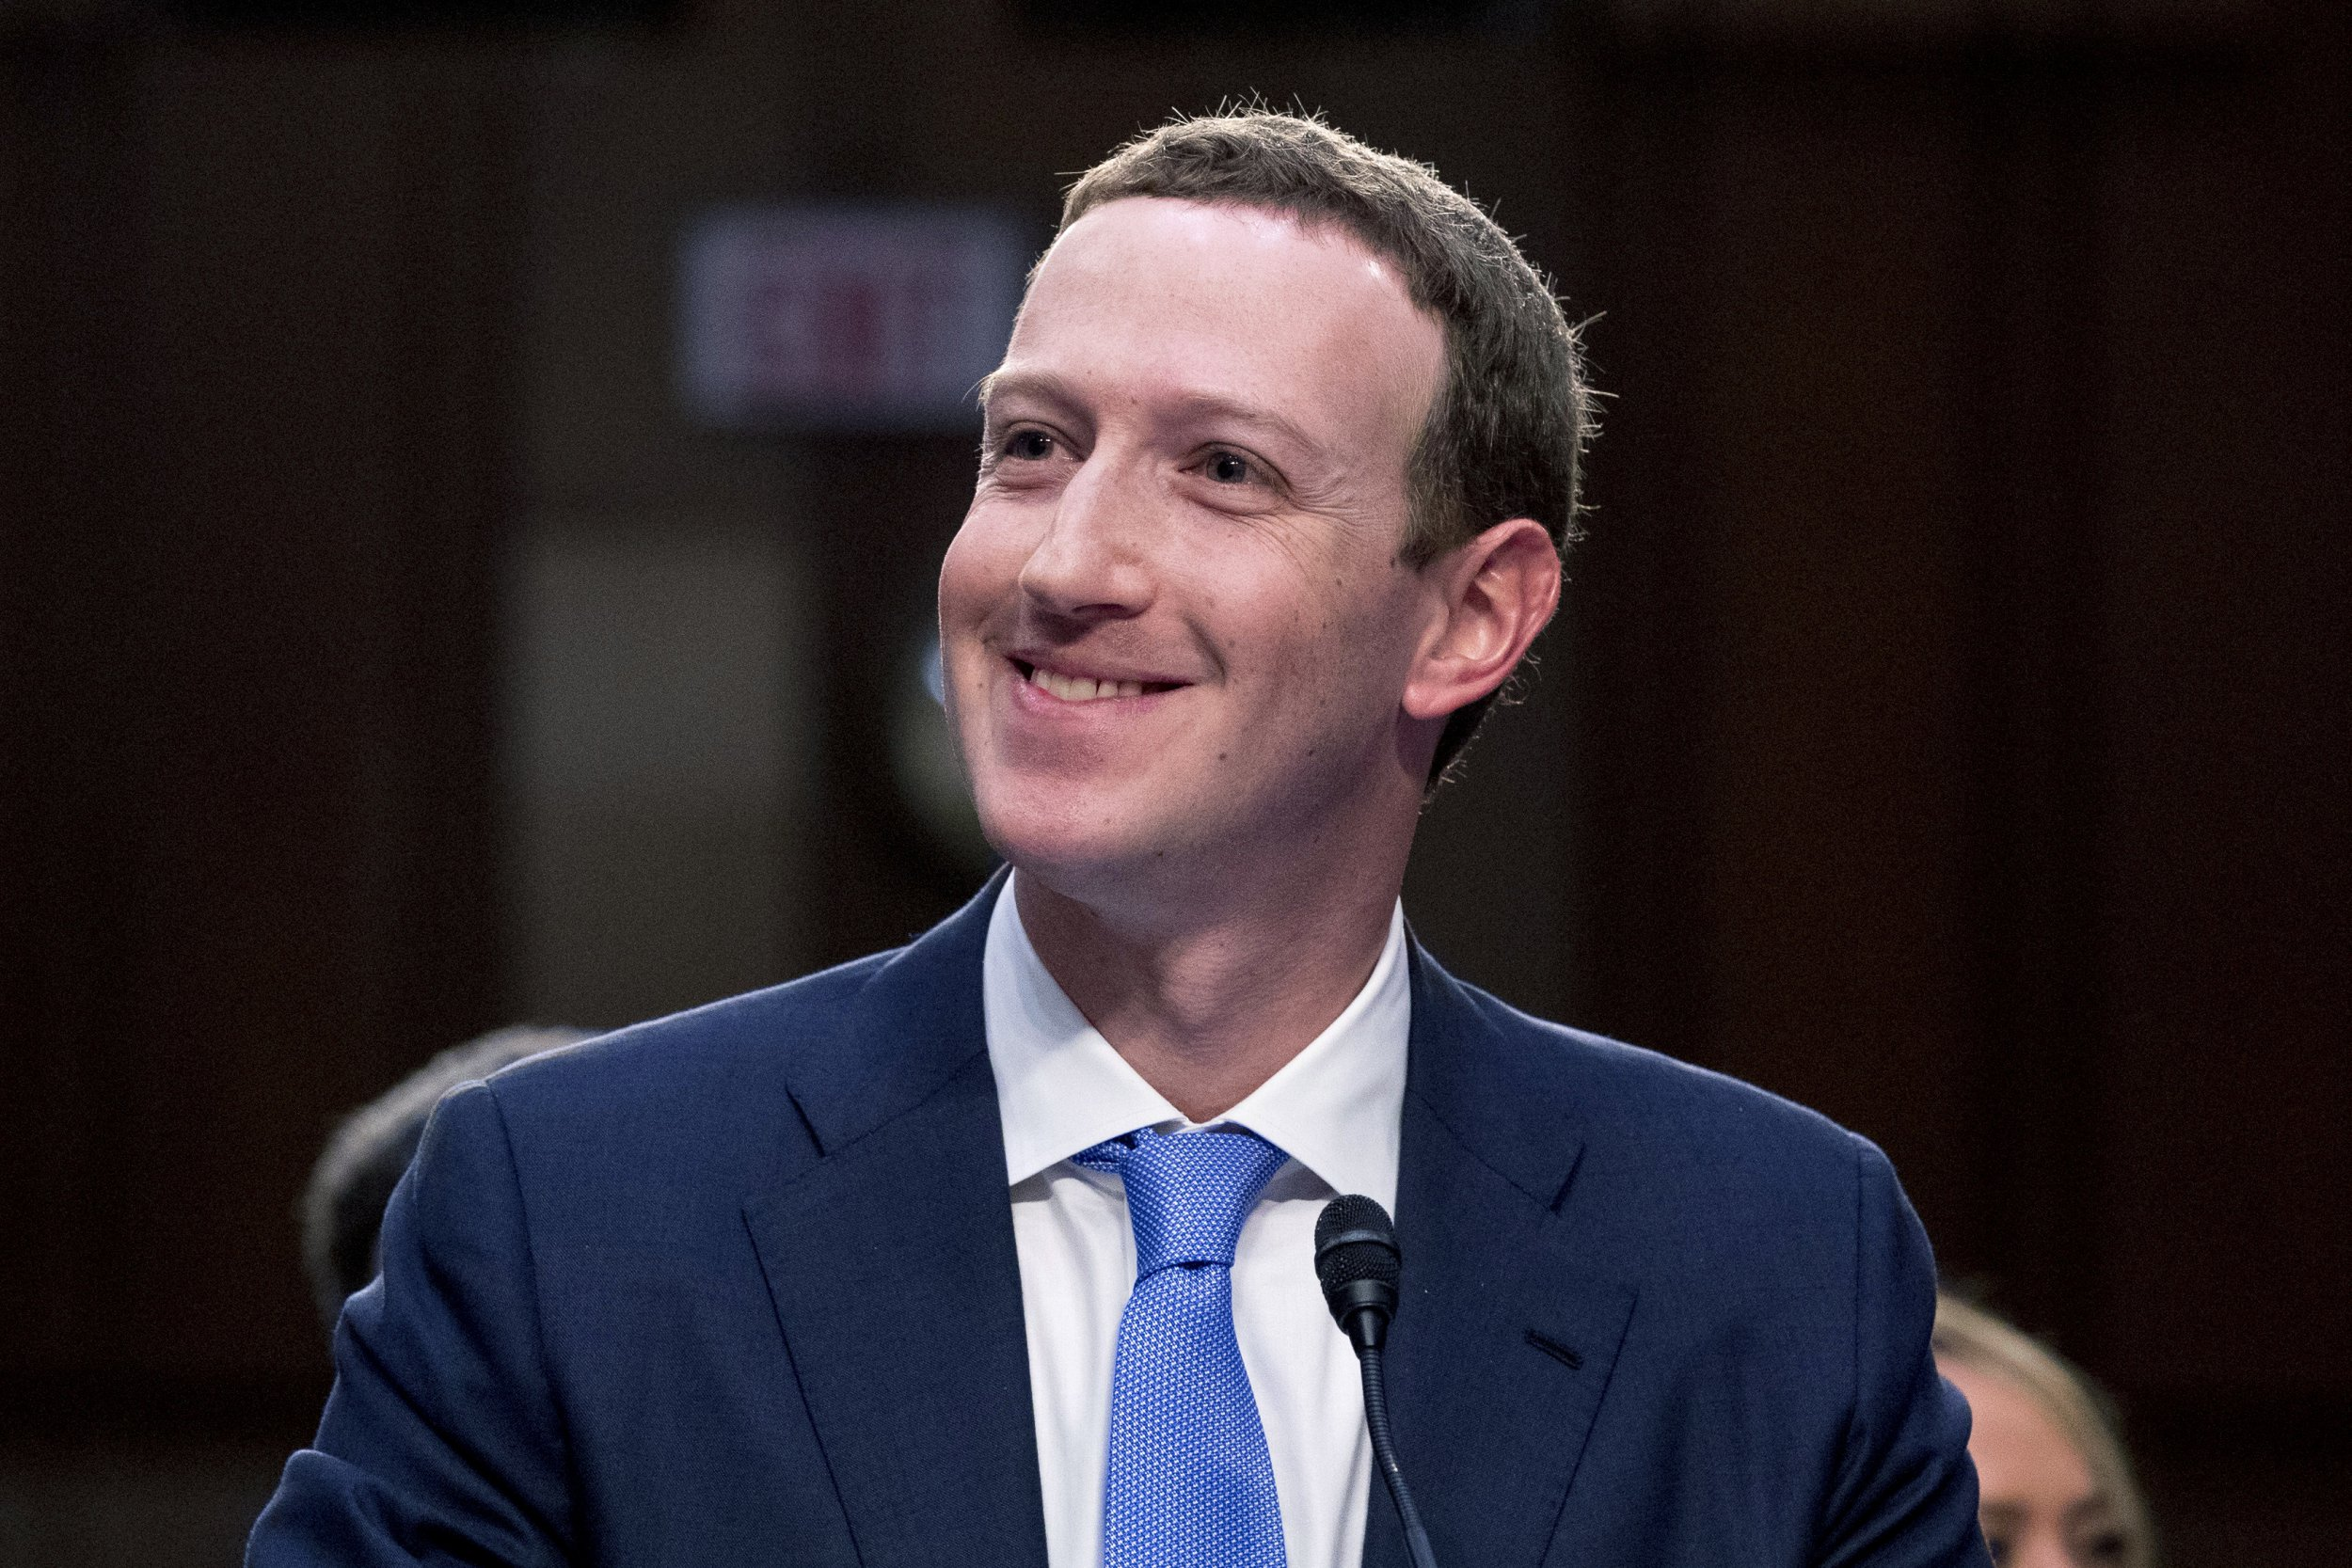 Facebook CEO Mark Zuckerberg smiles as he testifies before a joint hearing of the Commerce and Judiciary Committees on Capitol Hill in Washington, Tuesday, April 10, 2018, about the use of Facebook data to target American voters in the 2016 election. (AP Photo/Andrew Harnik)